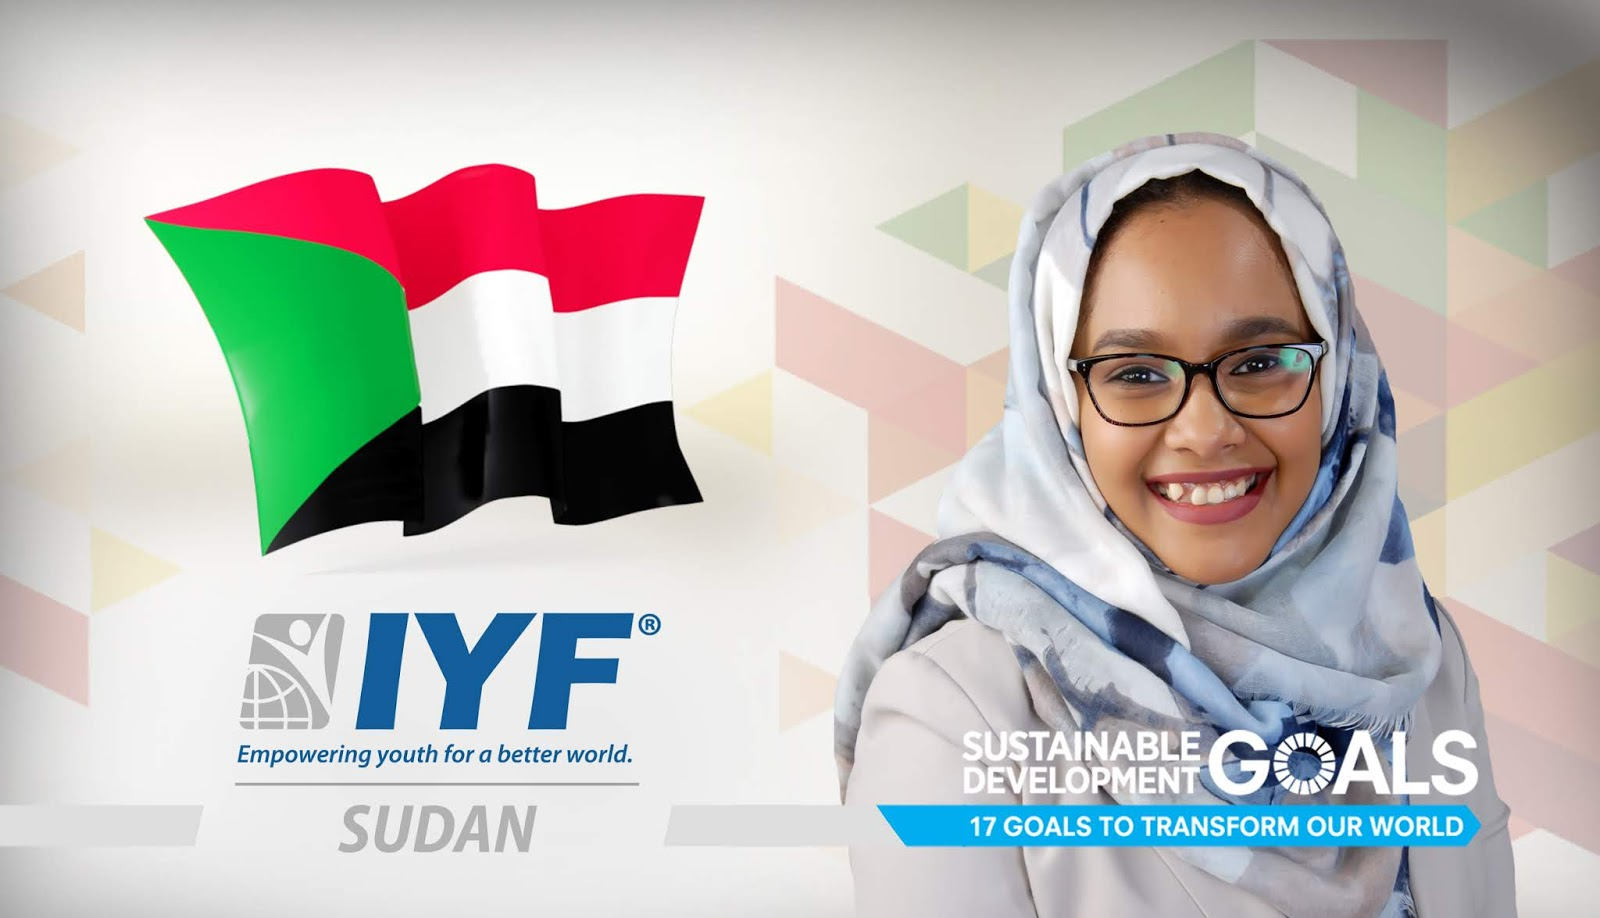 Rowan Saeed, IYF Representative in Sudan